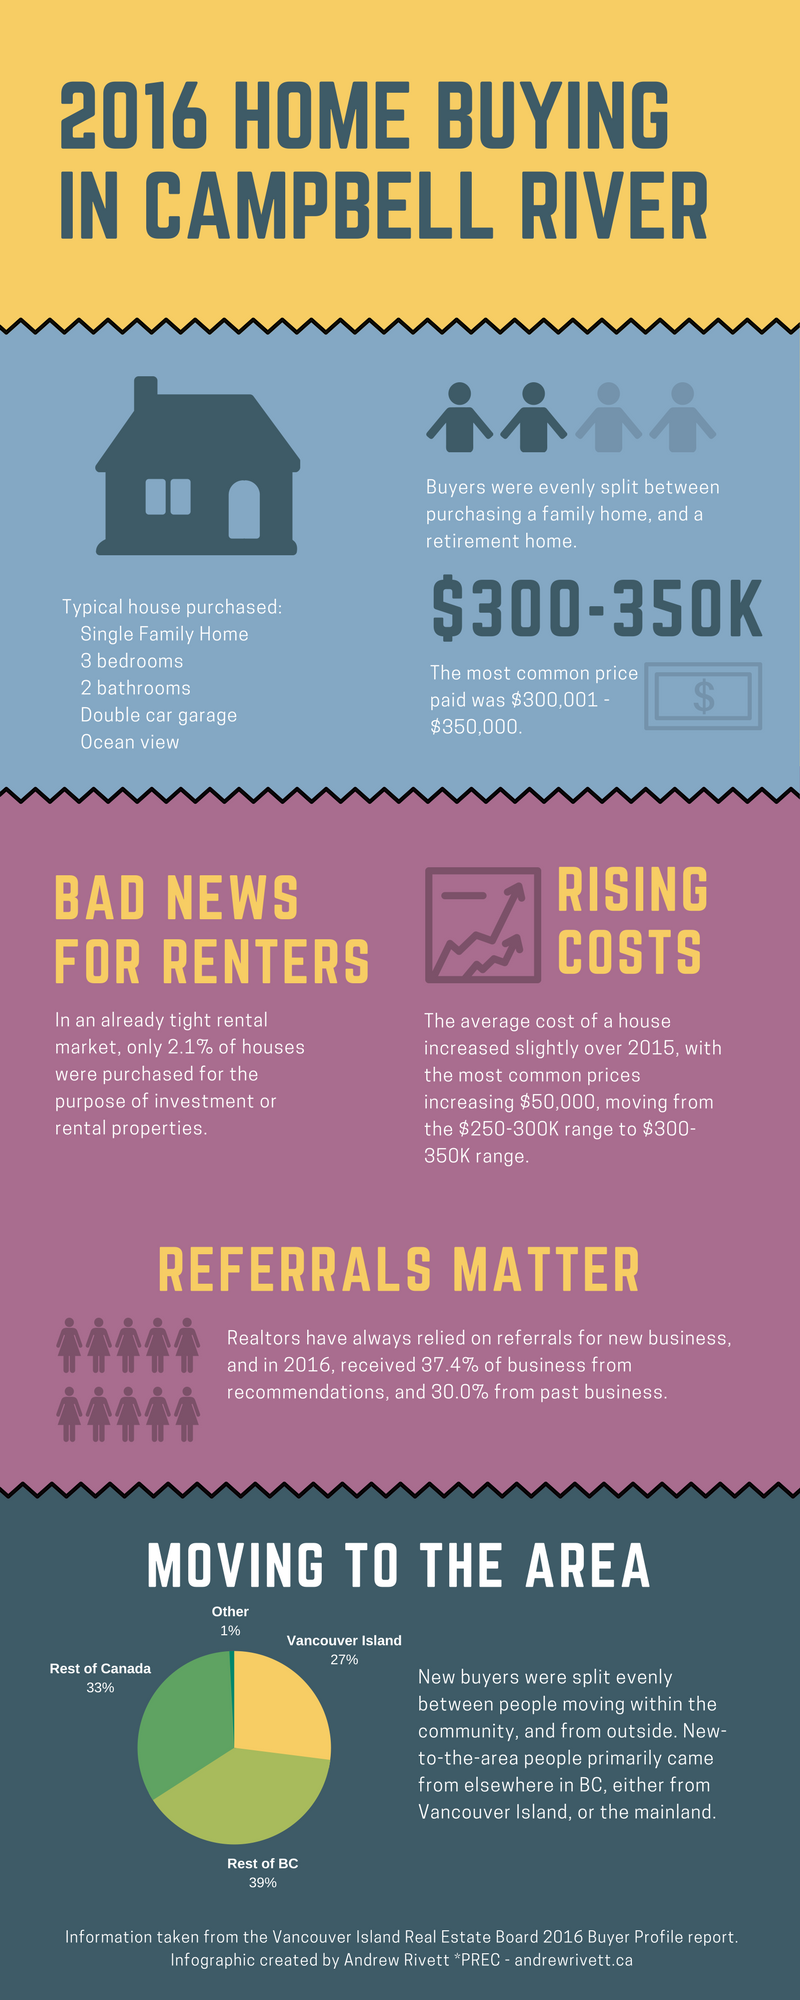 2016 Home Buying in Campbell River infographic